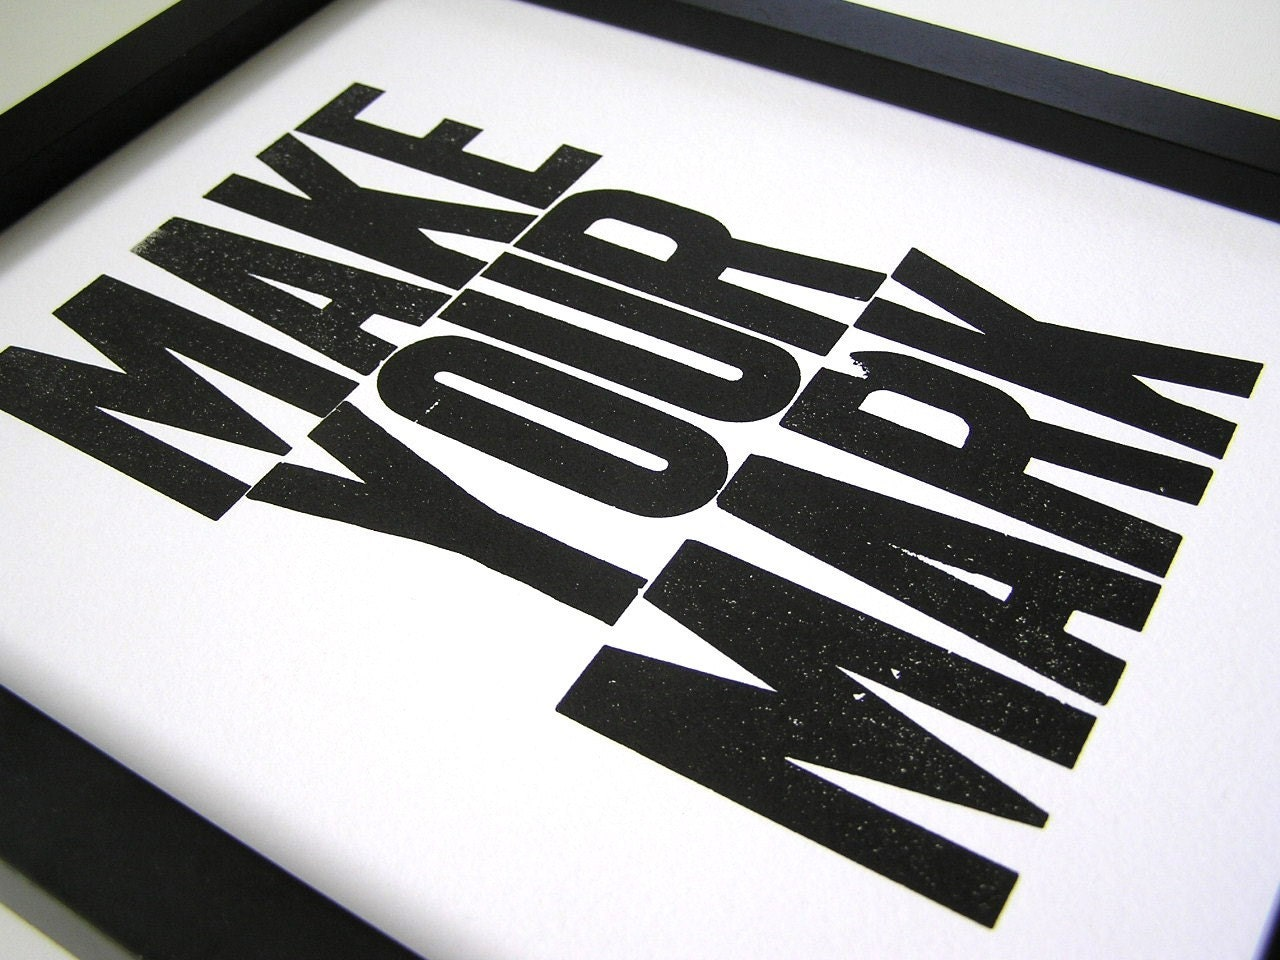 New Year's Print, Black and White Letterpress Print, Make Your Mark 8x10